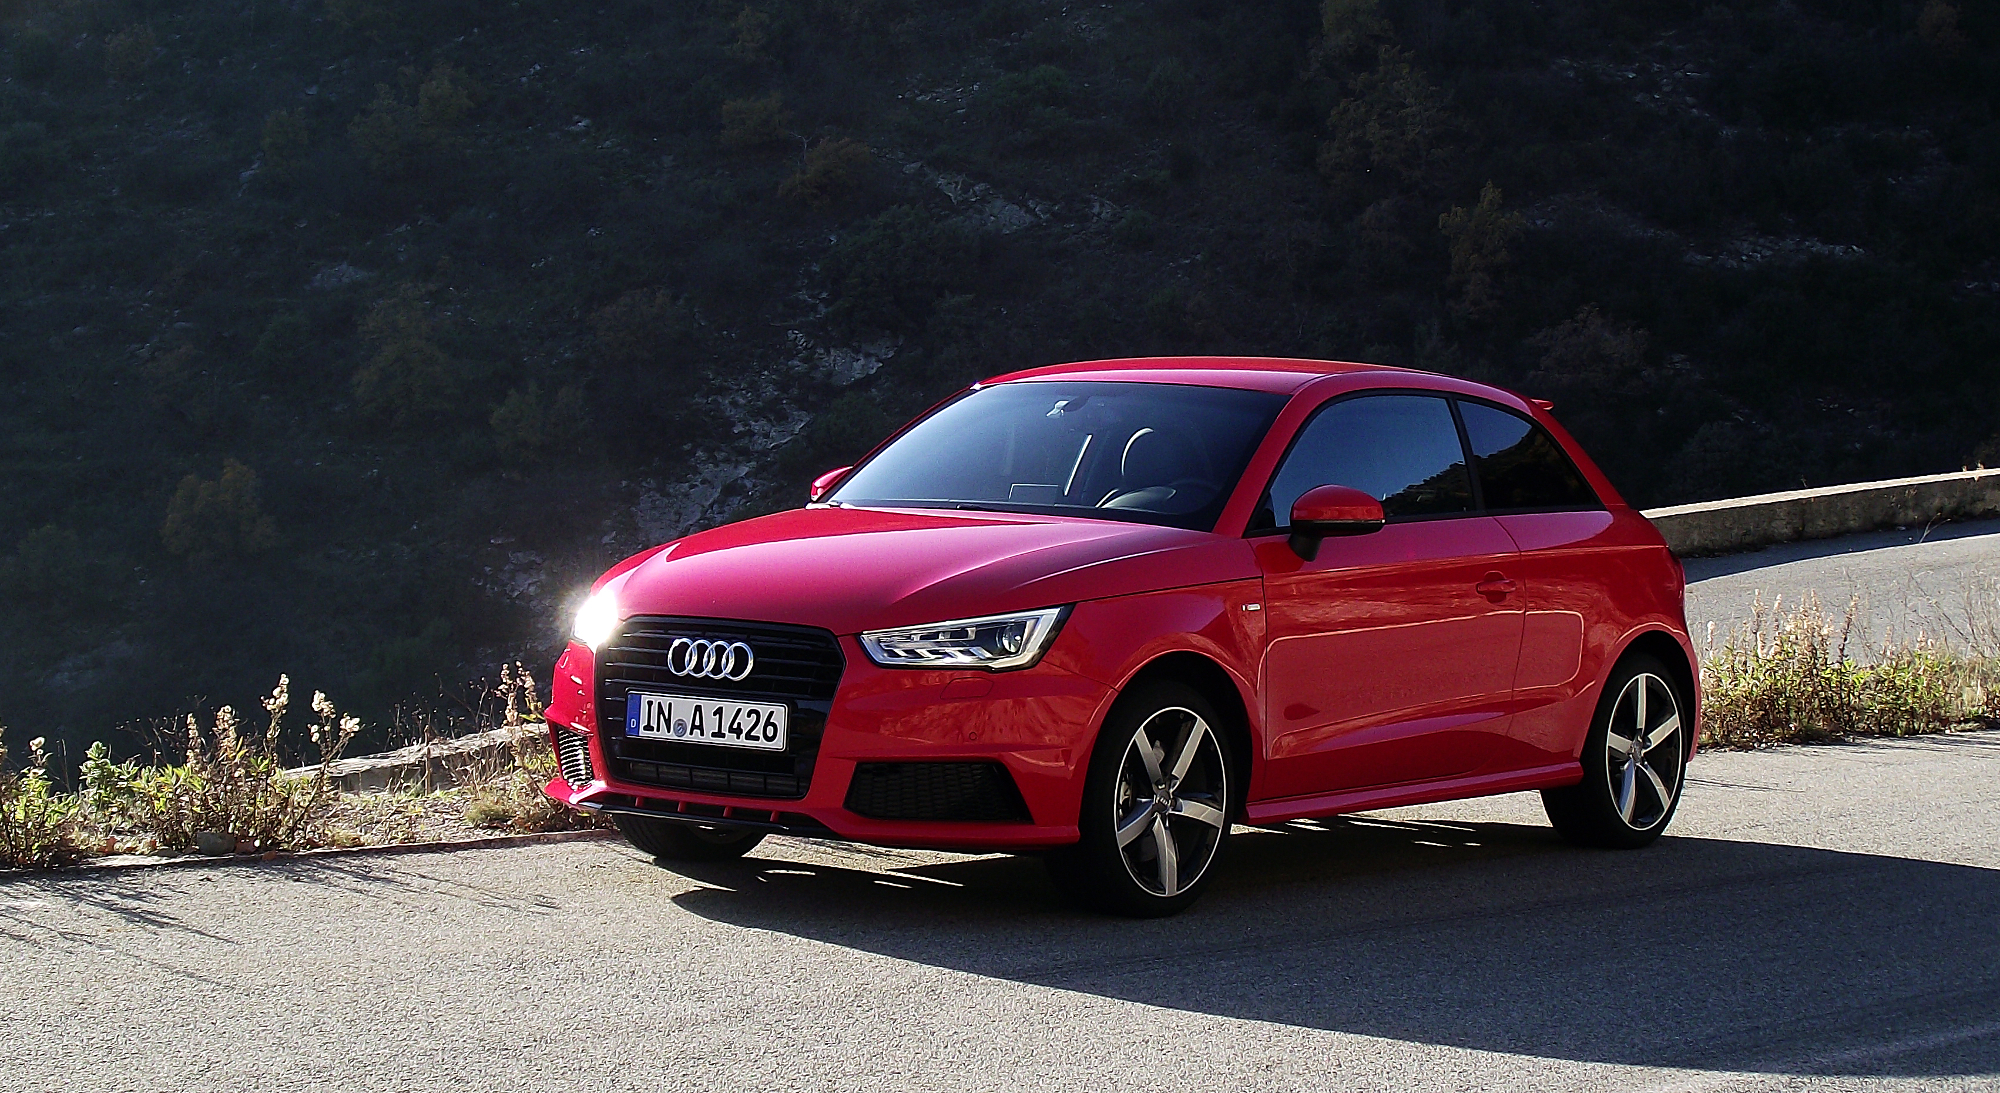 2016 audi a1 8x1 pictures information and specs auto. Black Bedroom Furniture Sets. Home Design Ideas